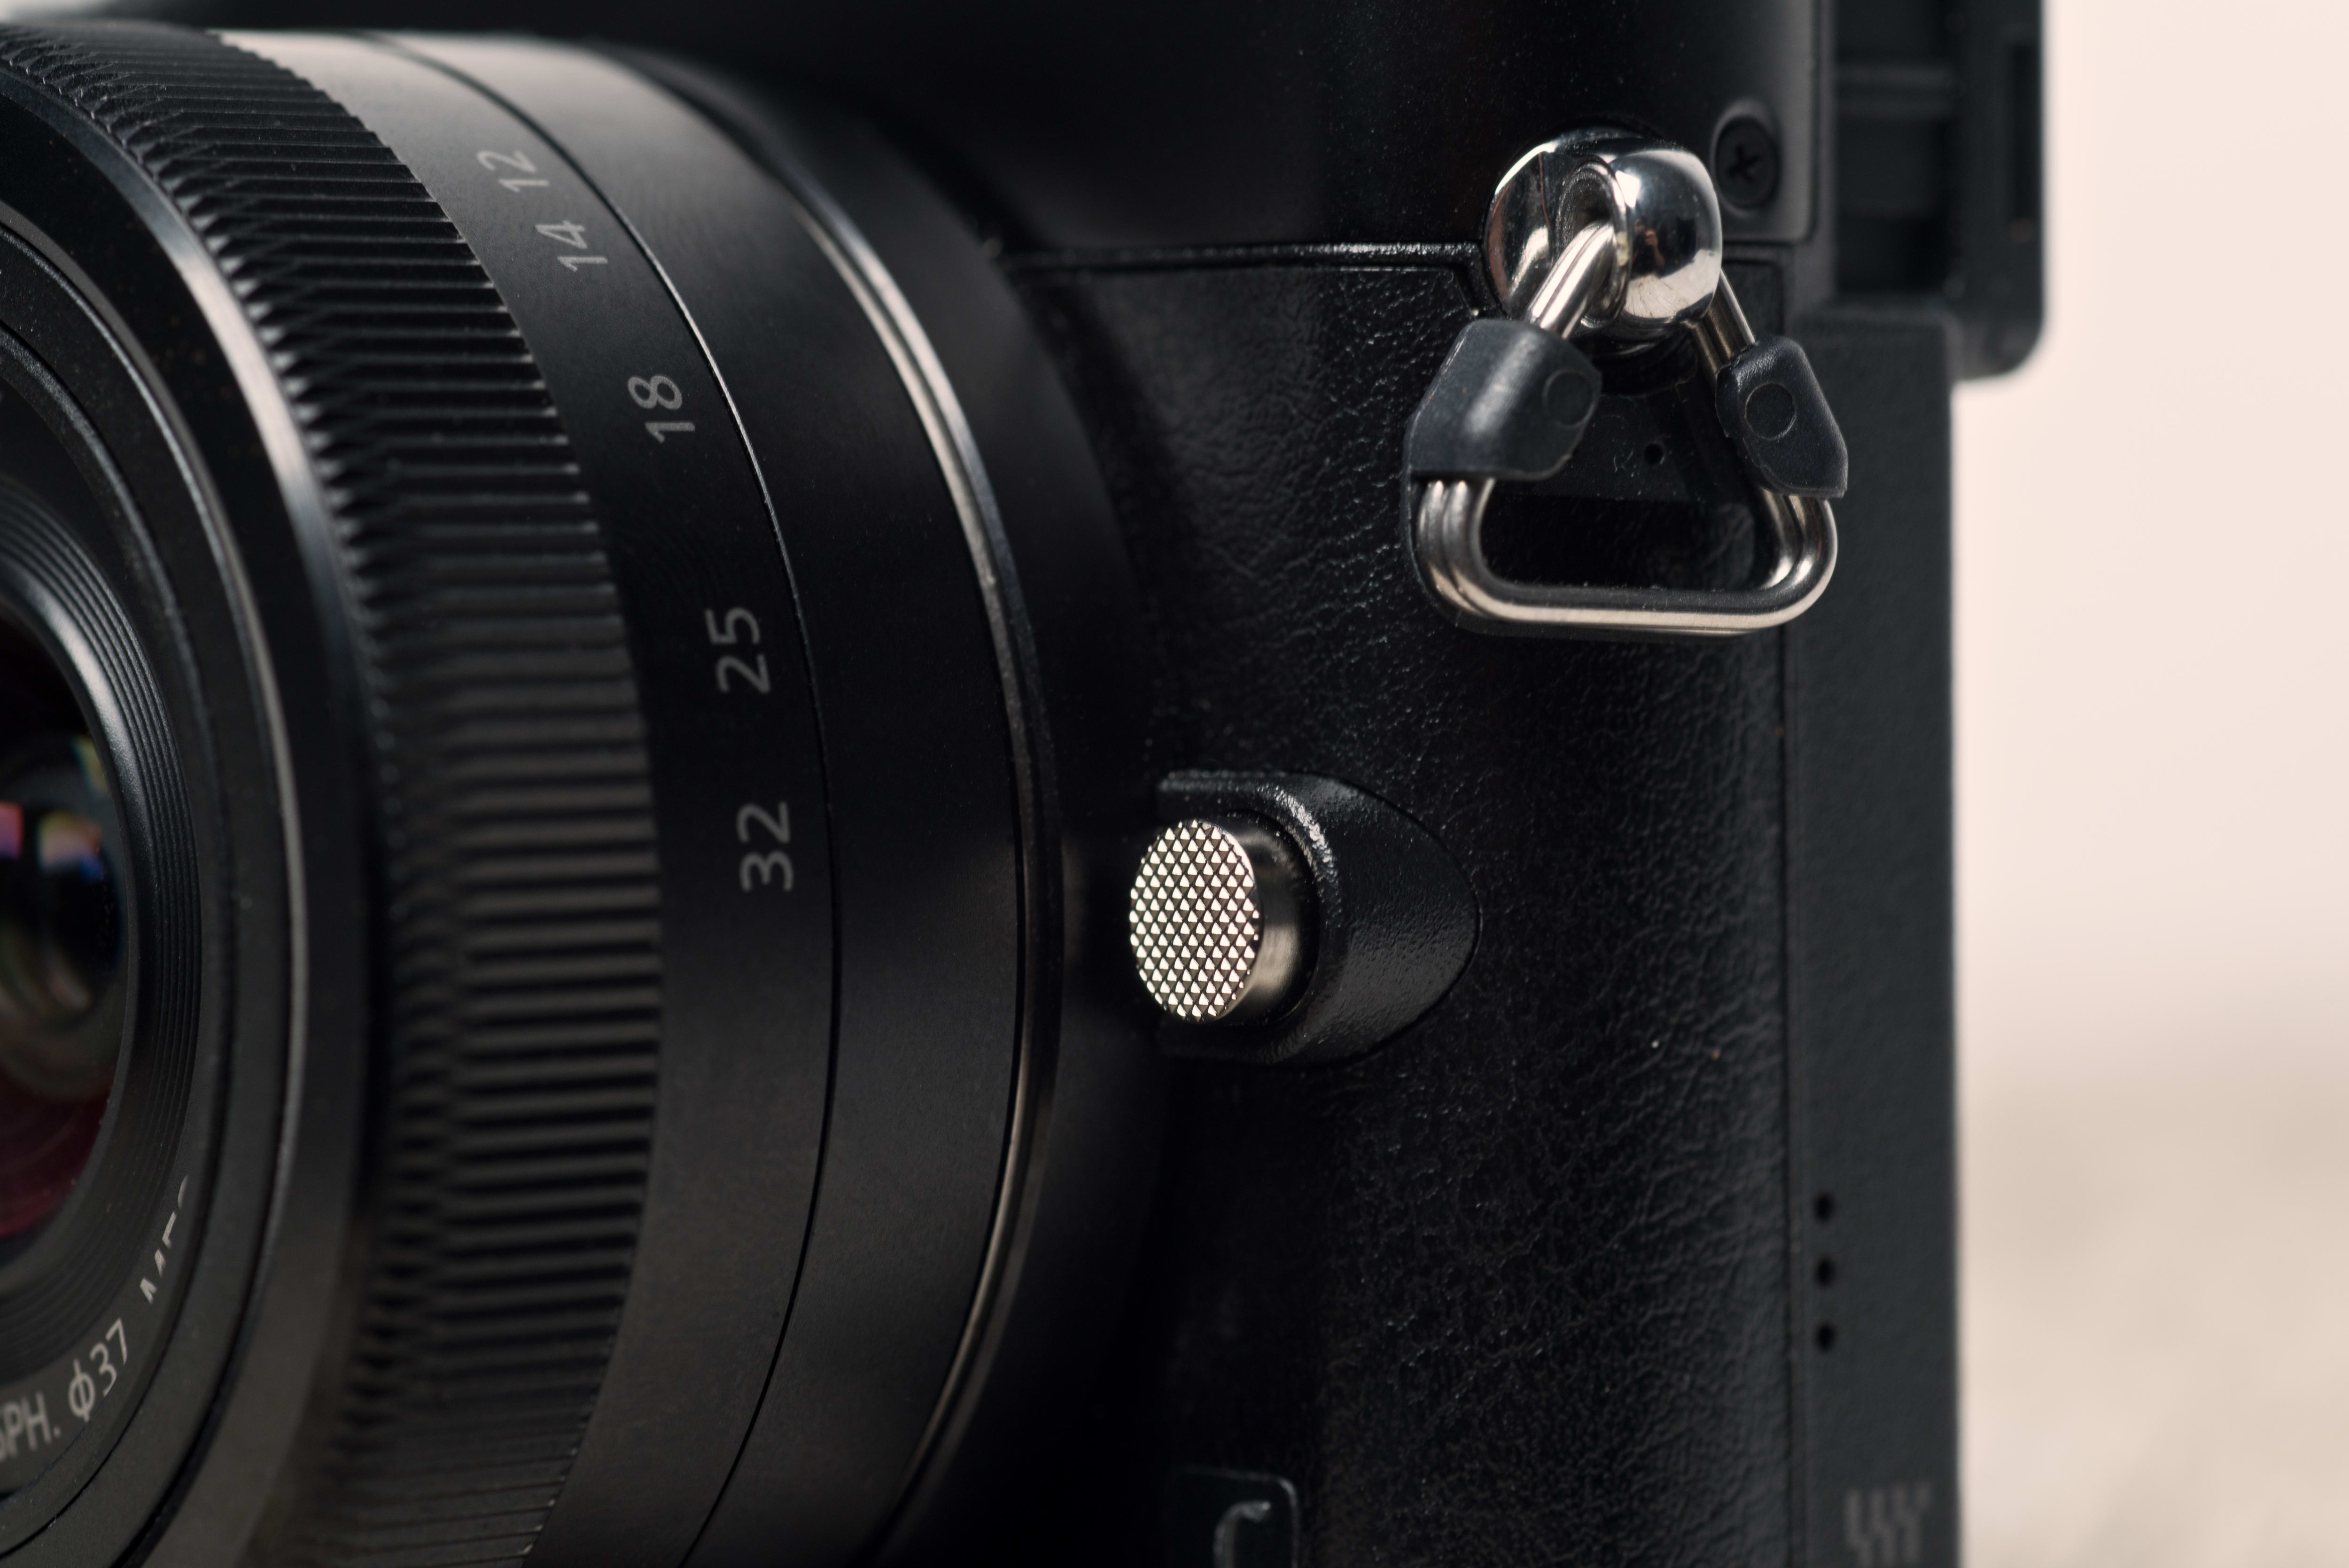 A photo of the Panasonic GM5's lens release button.